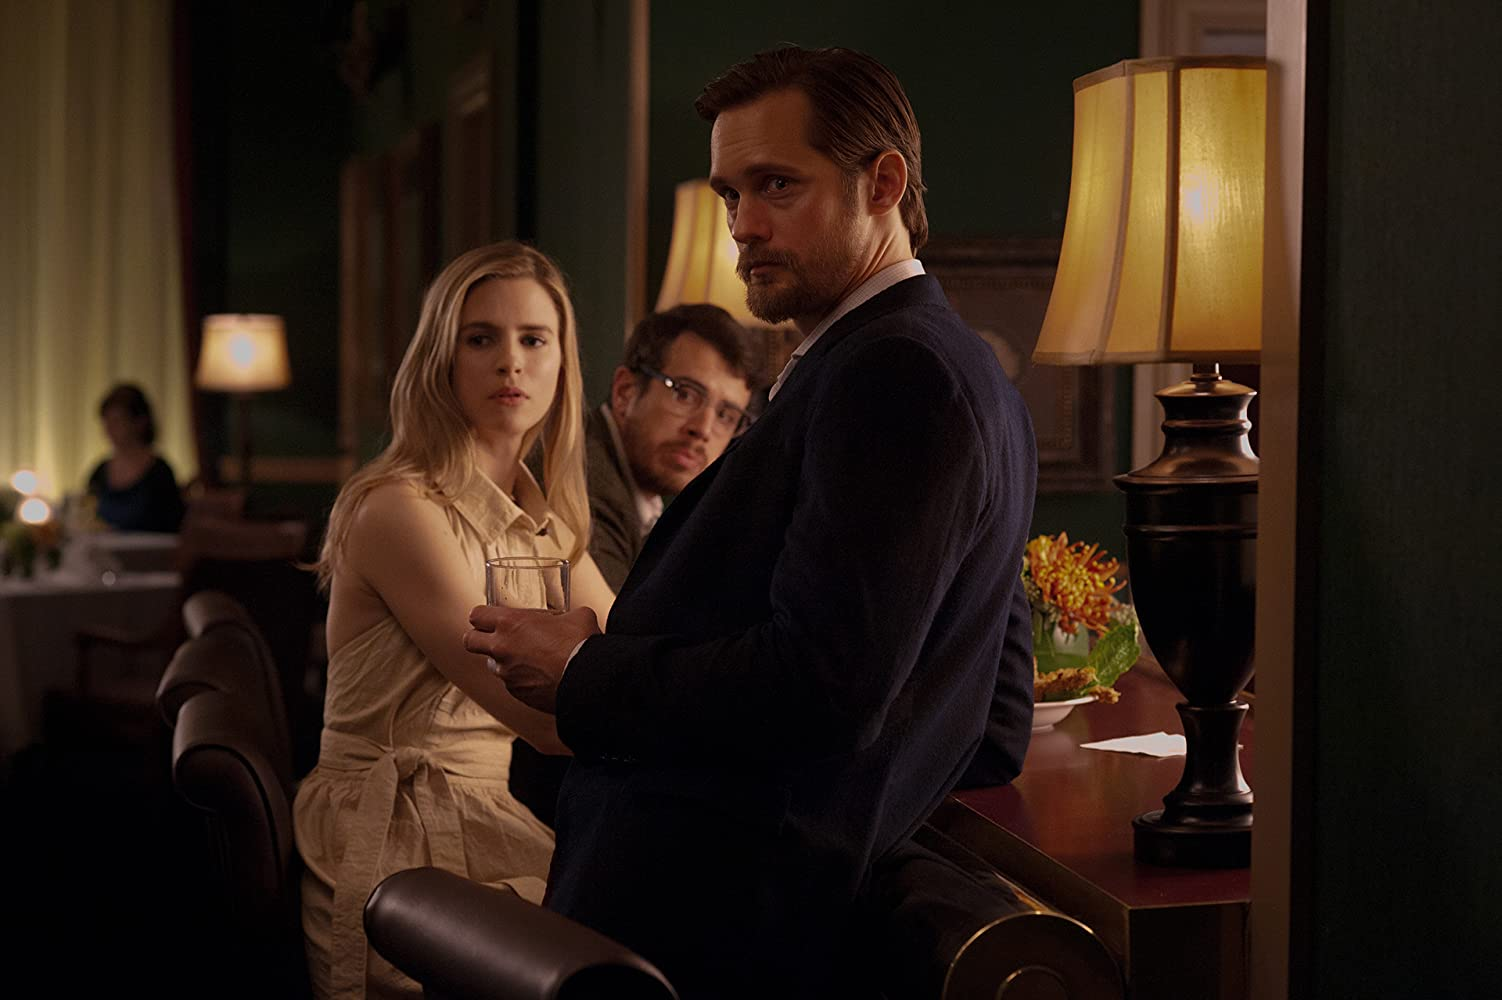 Alexander Skarsgård and Brit Marling in The East (2013)